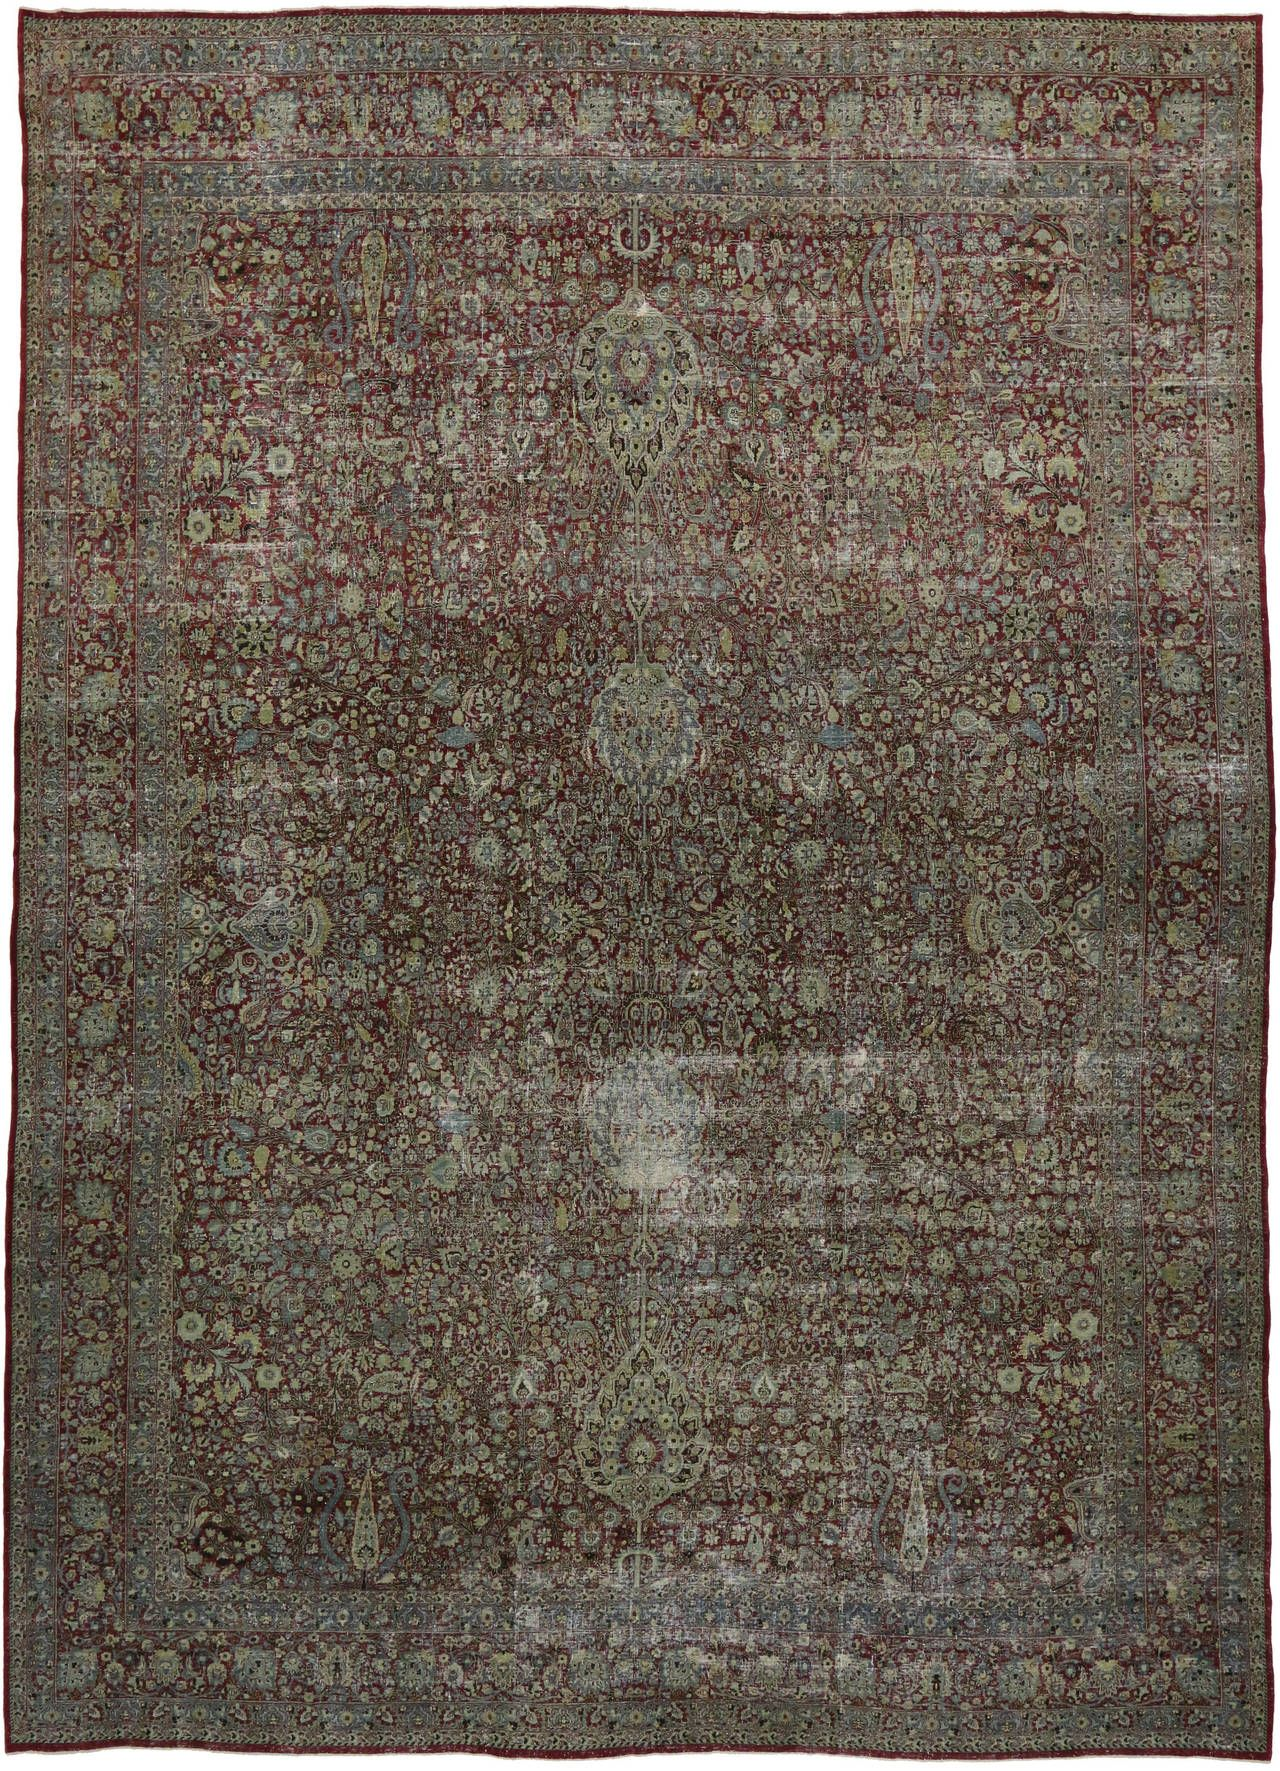 Distressed Antique Persian Kerman With Modern Rustic Industrial Style Modern Persian Rug Rugs On Carpet Distressed Rugs